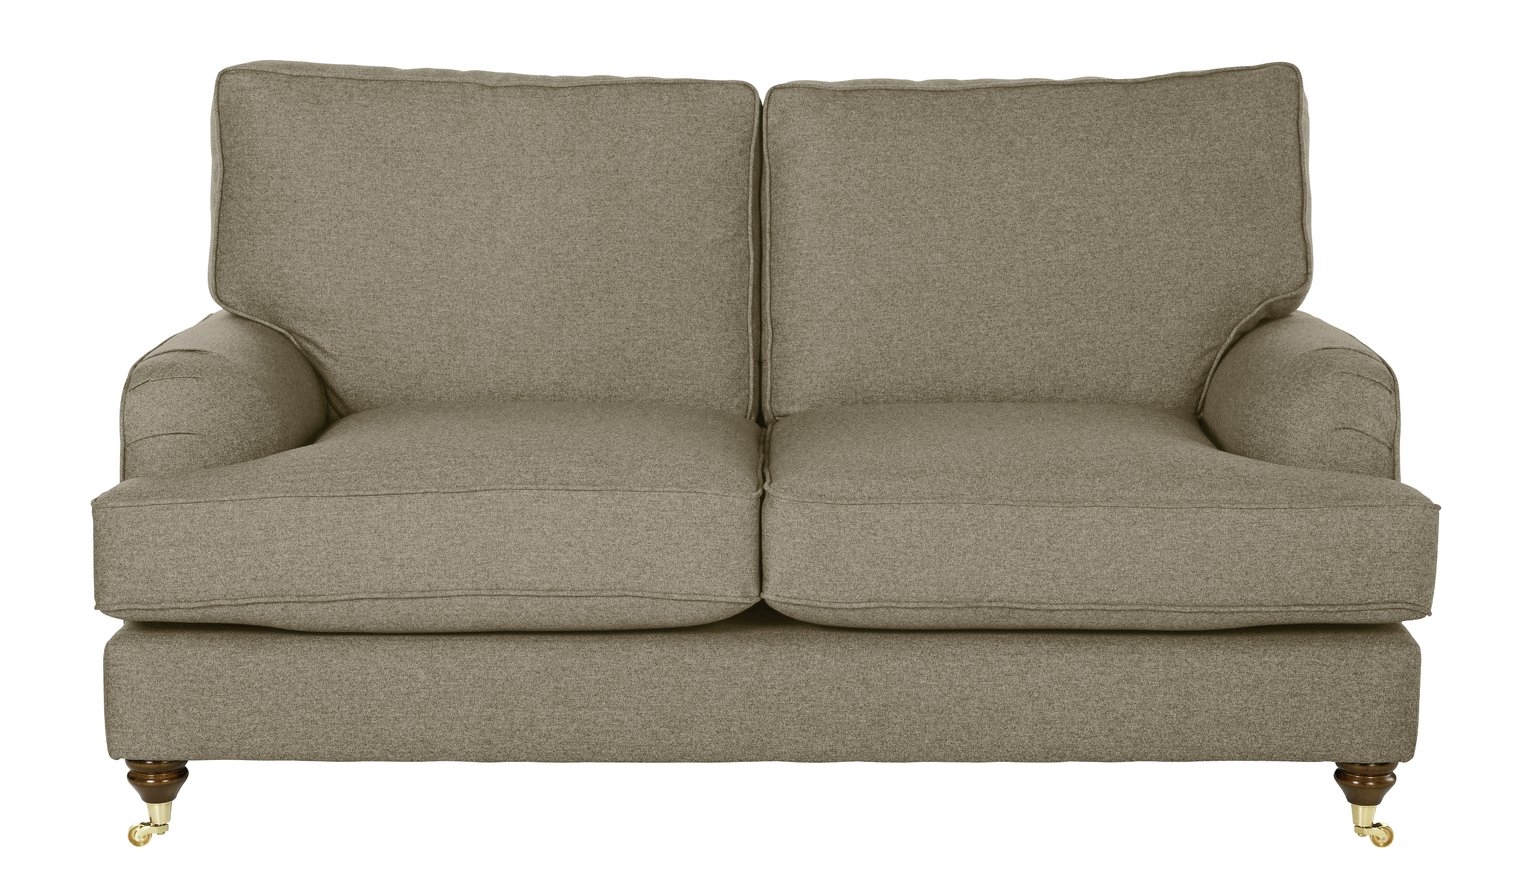 Image of Heart of House Abberton 2 Seater Sofa - Natural Tweed